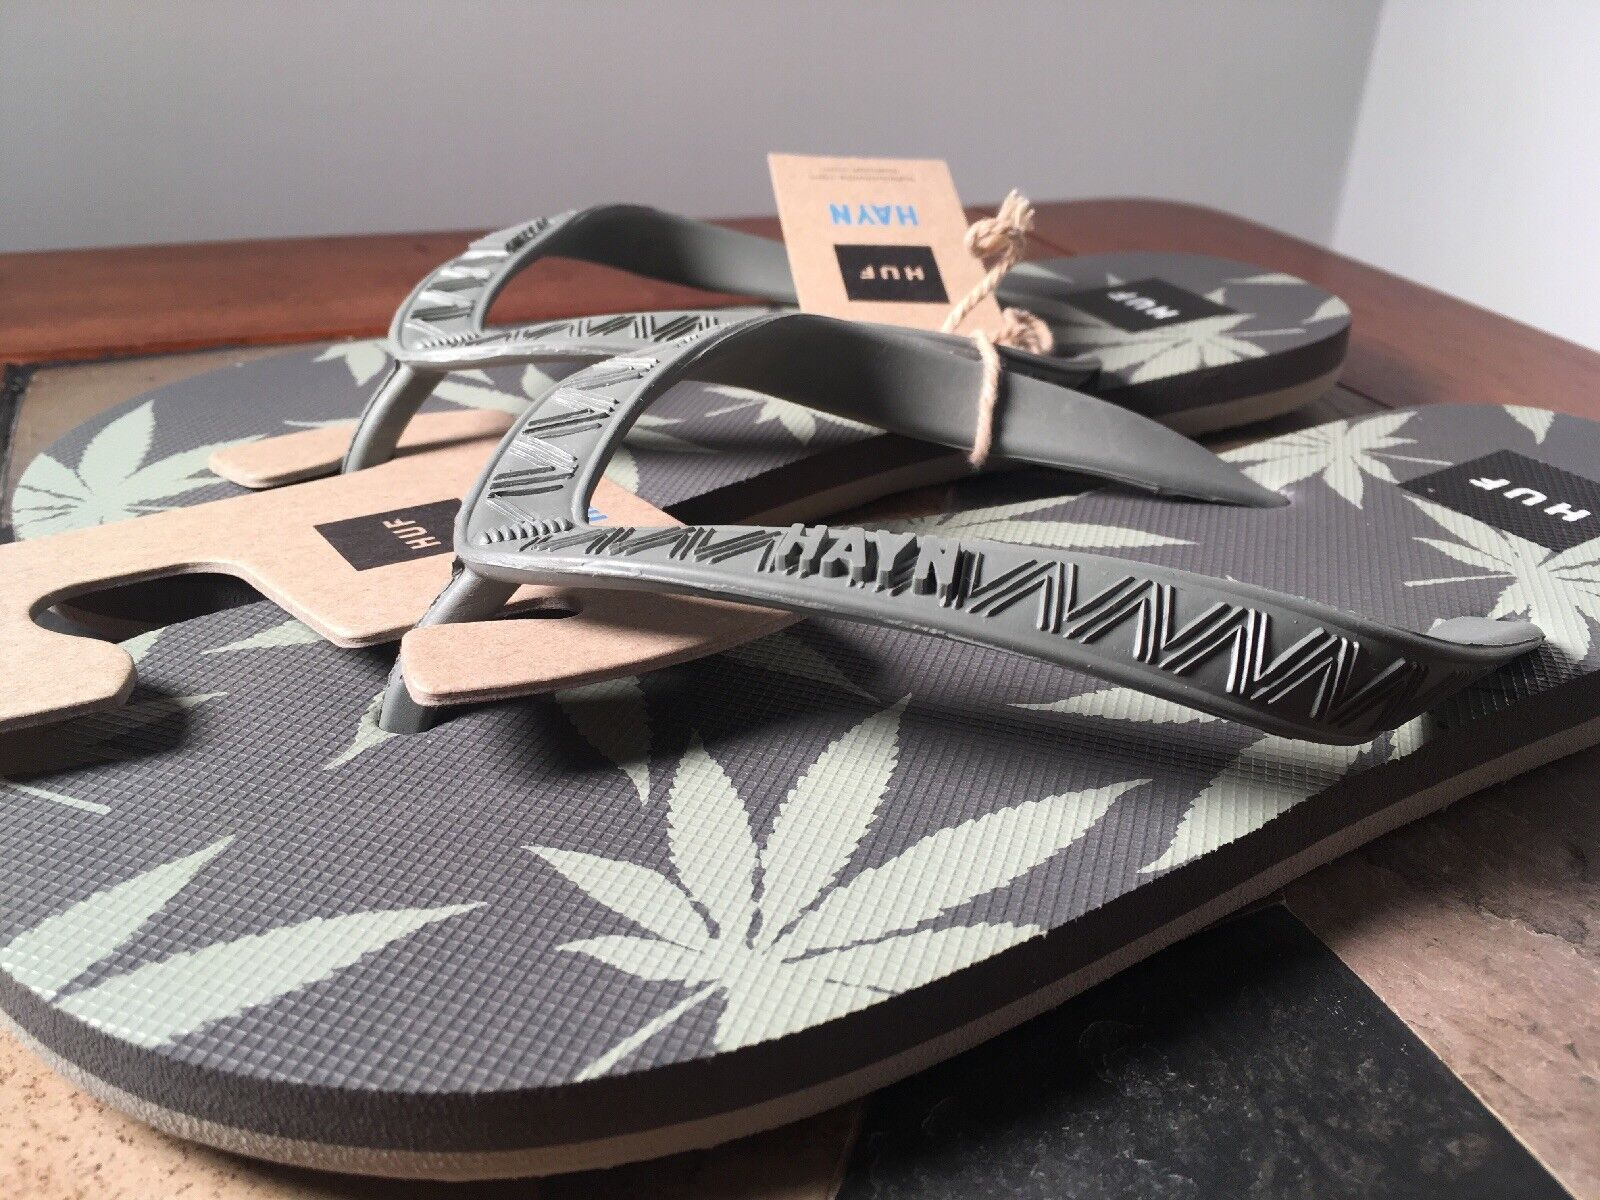 HUF X HAYN 420 grey sandals size 10 cannabis pot weed 710 joint fire flipflops